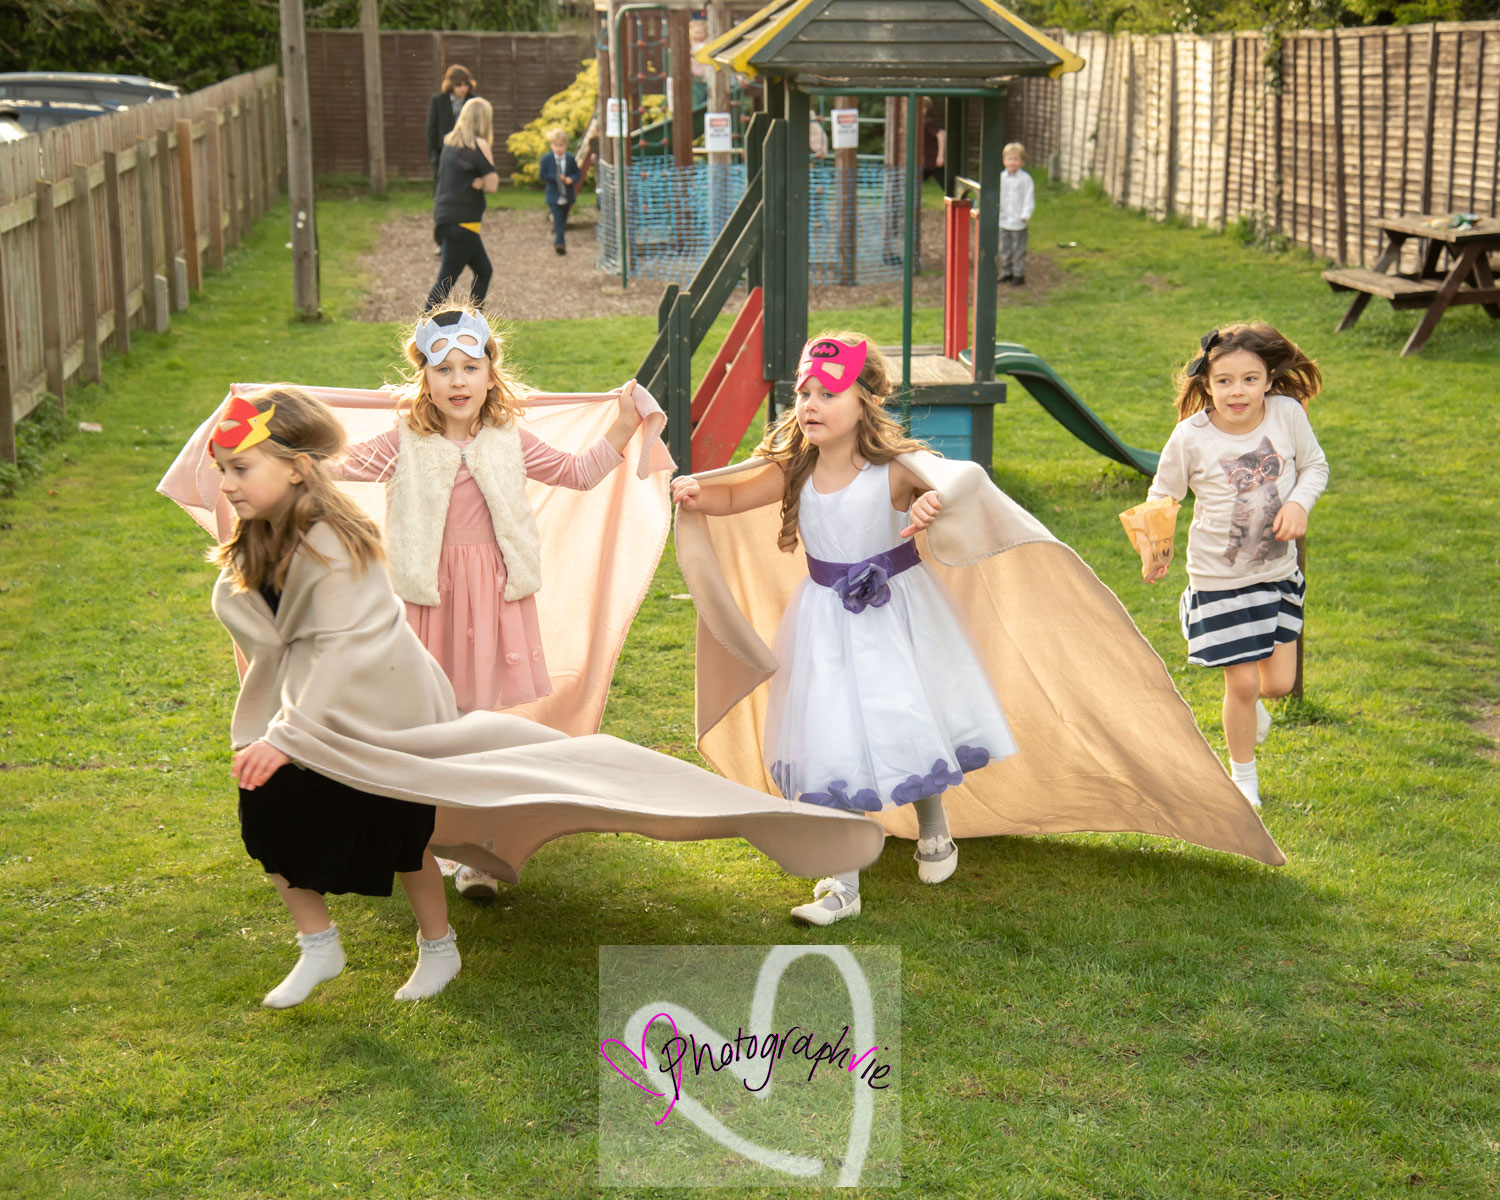 superhero masks on children playing at a wedding in soham, cambridge, wedding photography by vicki newman, relaxed fun photos